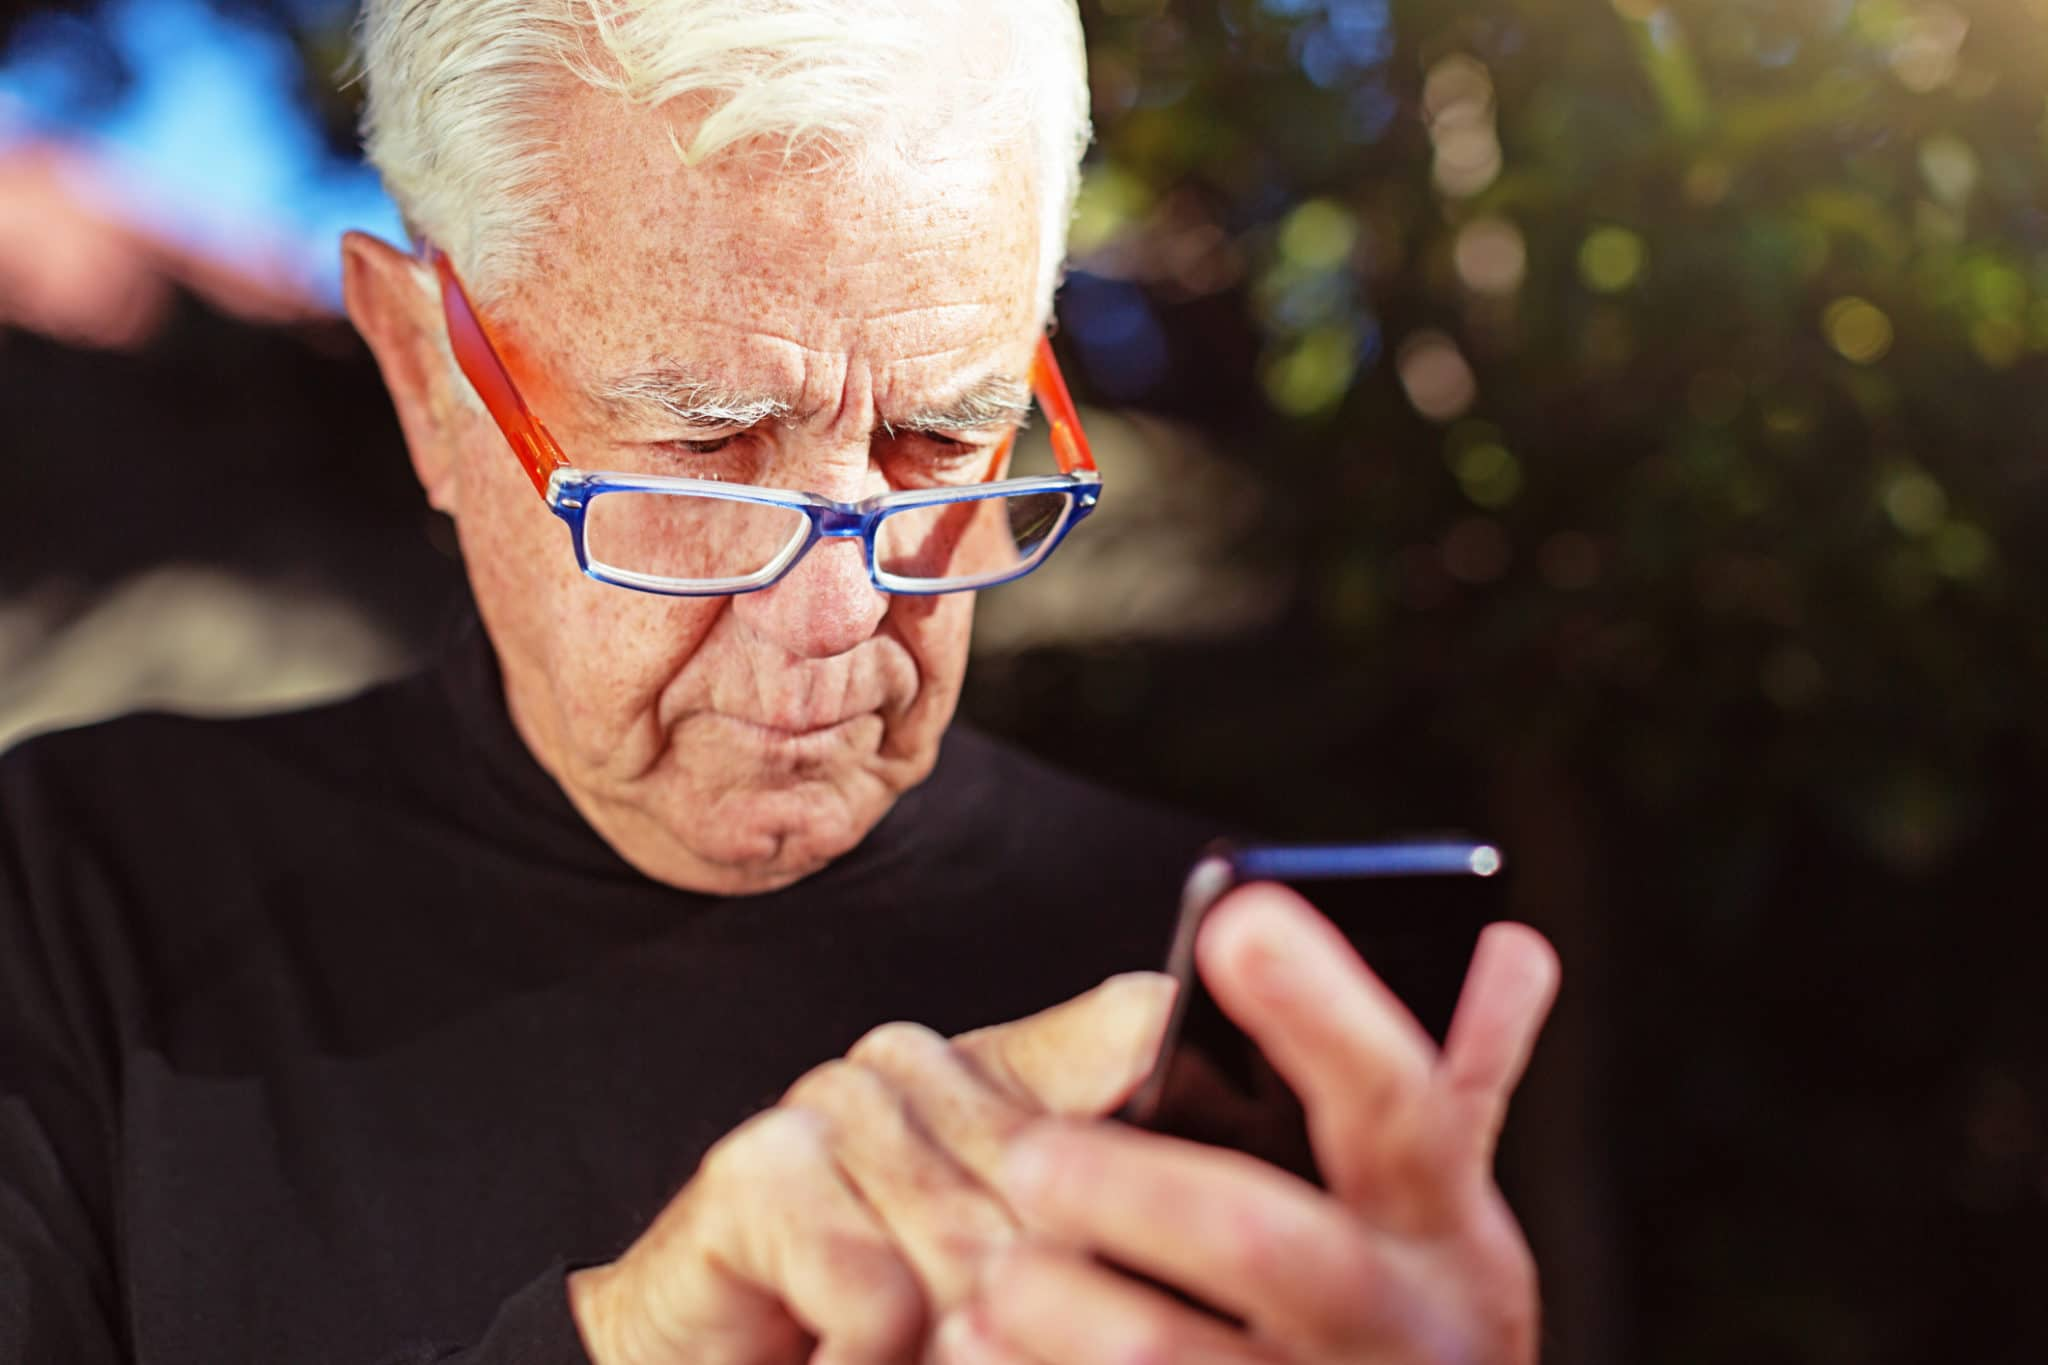 A senior man wearing eyeglasses peers down at his smart phone as he taps out a text.